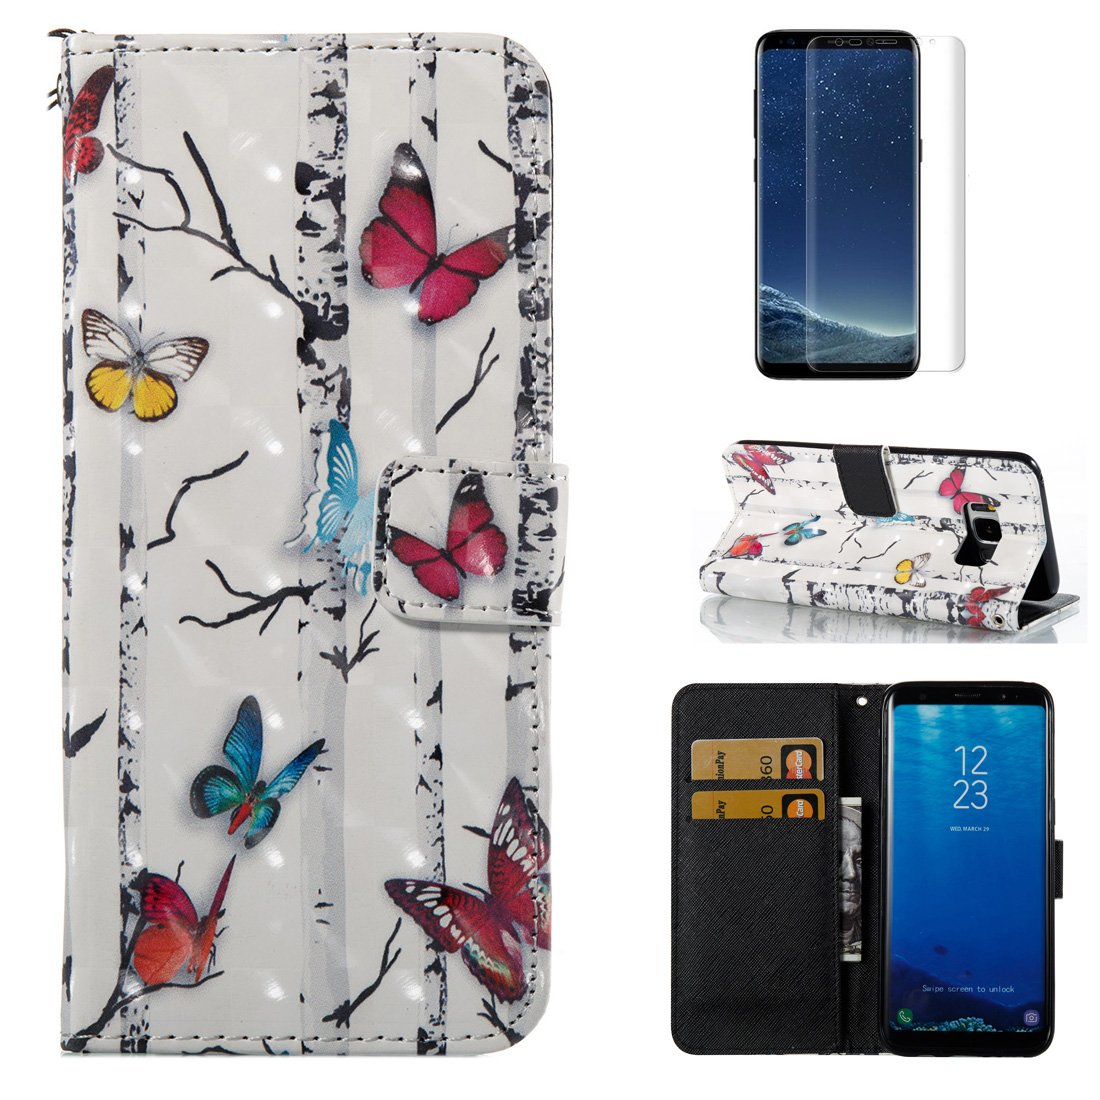 For Samsung Galaxy S8 Wallet Case and Screen Protector, OYIME [Black Feather] 3D Glitter Pattern Design Bookstyle Leather Holster Kickstand Card Slots Function Full Body Protective Bumper Magnetic Closure Flip Cover with Wrist Lanyard